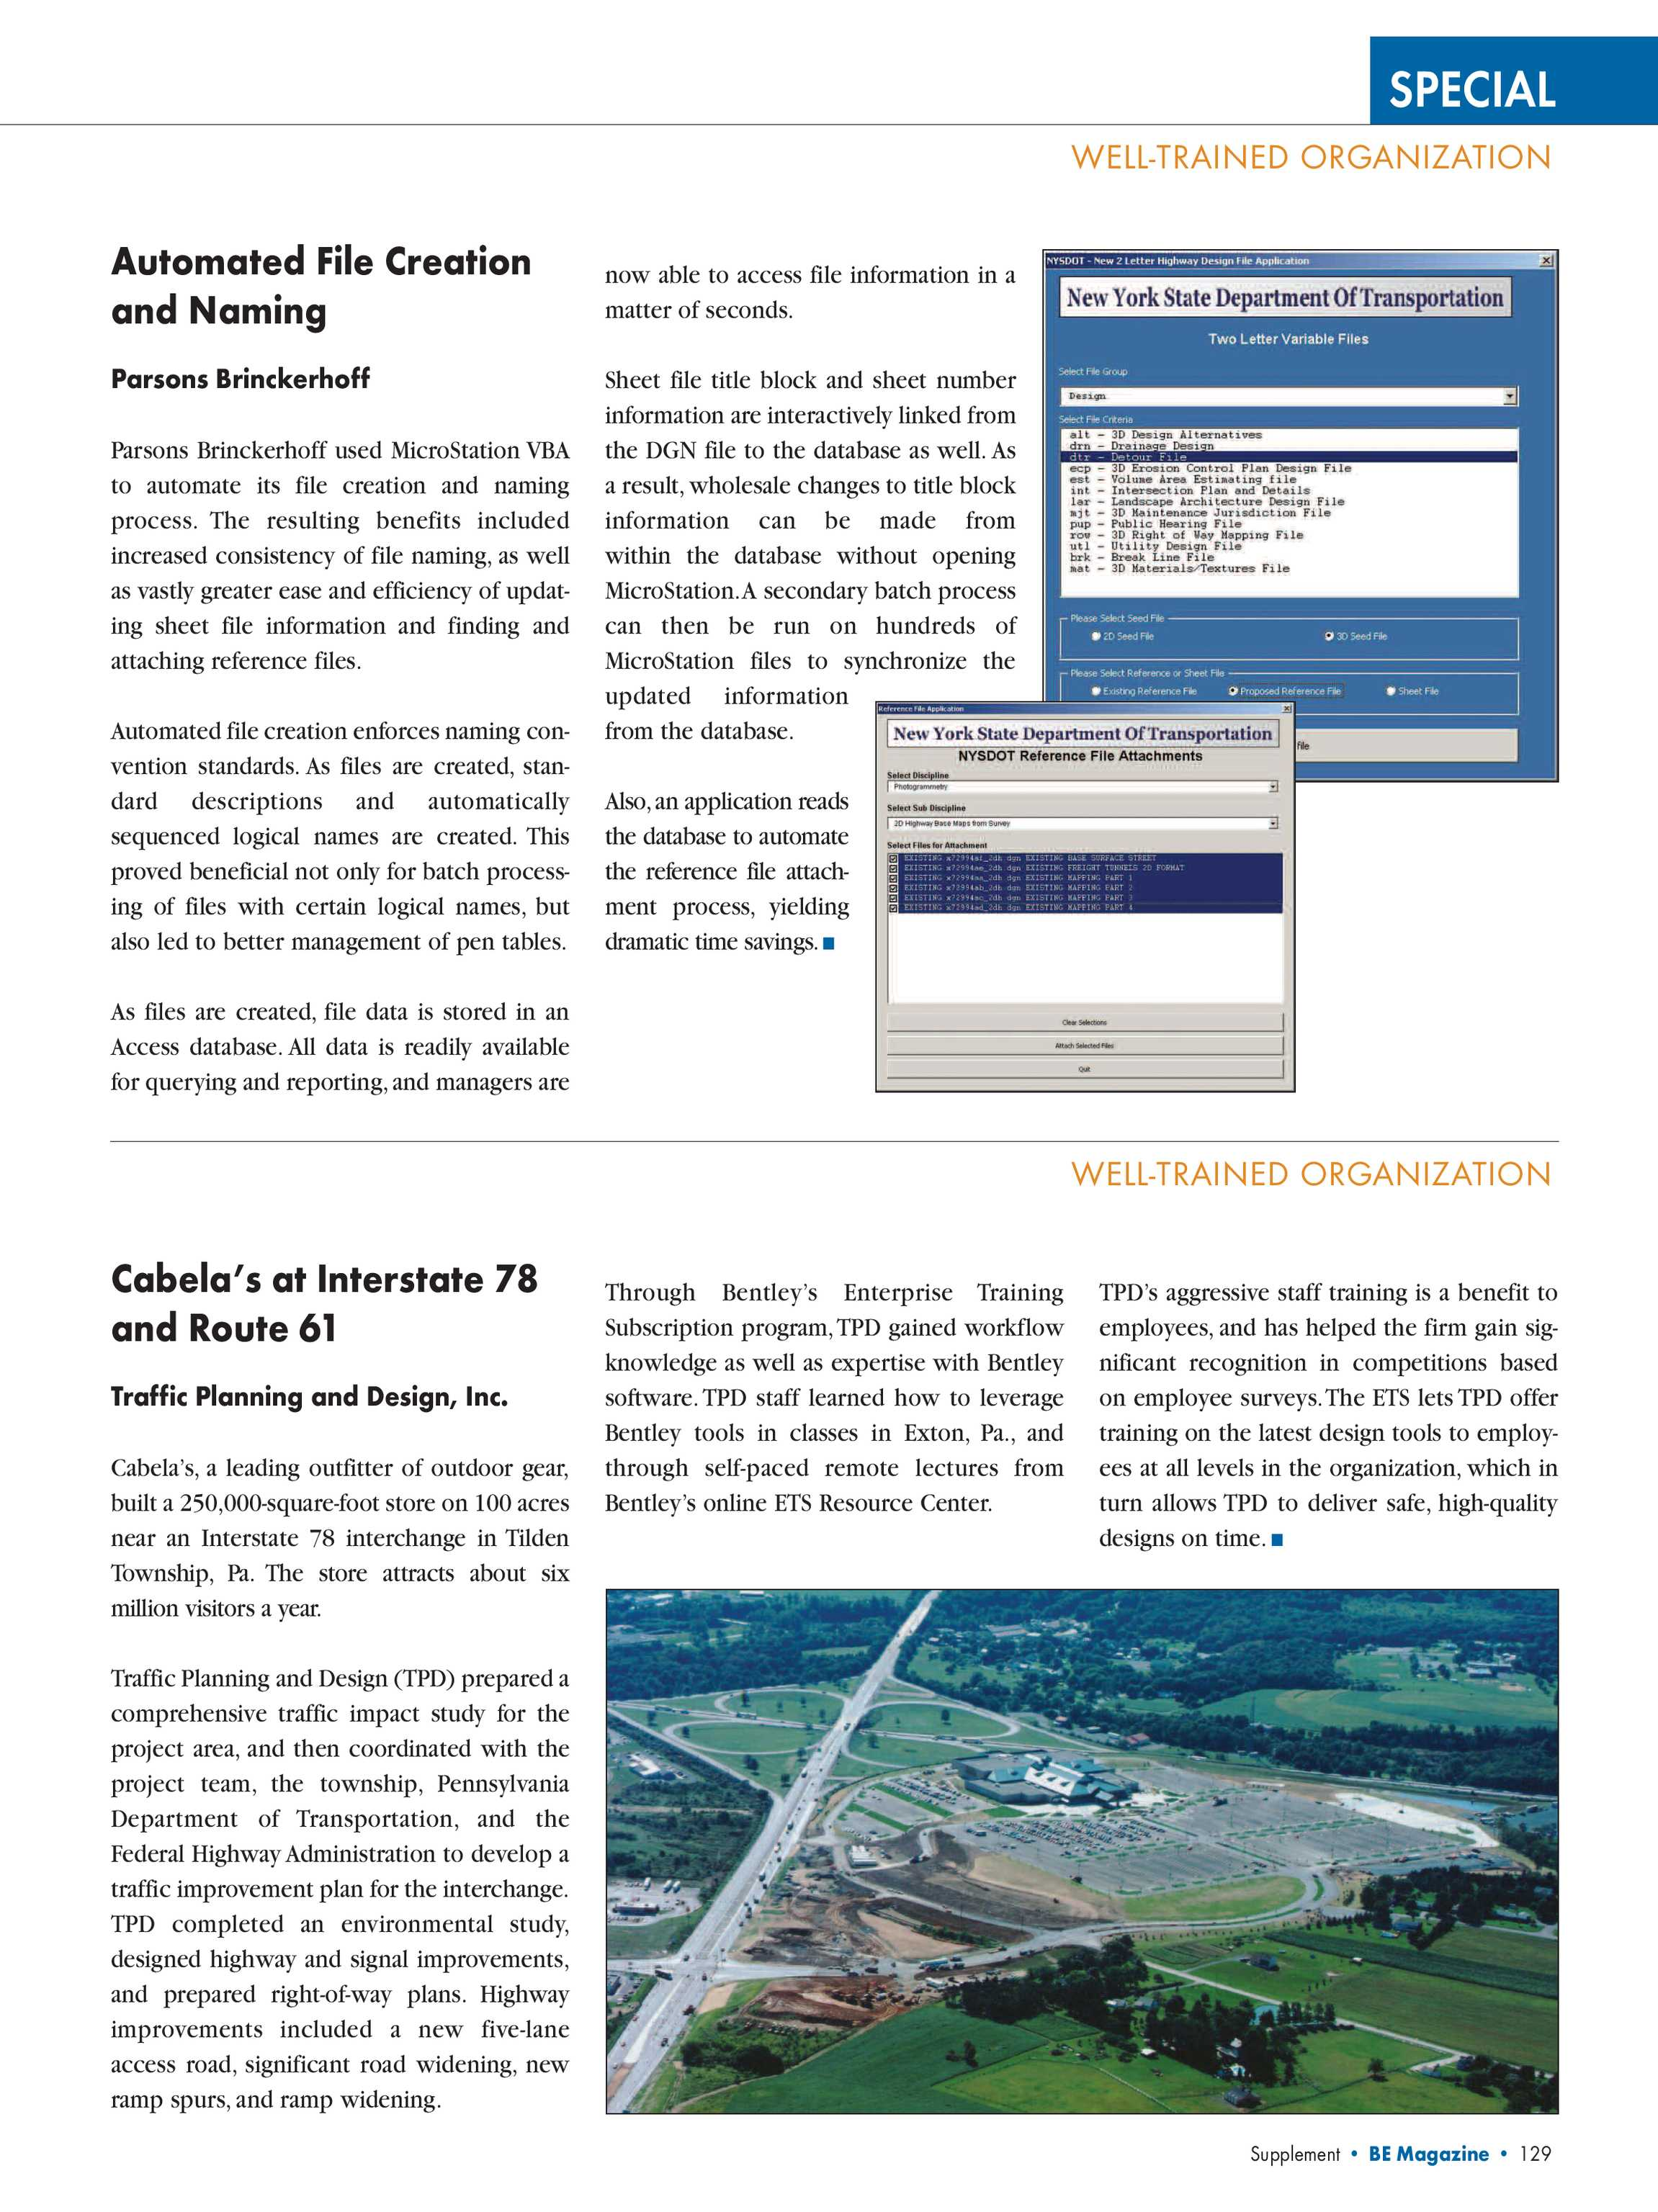 Year In Infrastructure 2005 - page 130